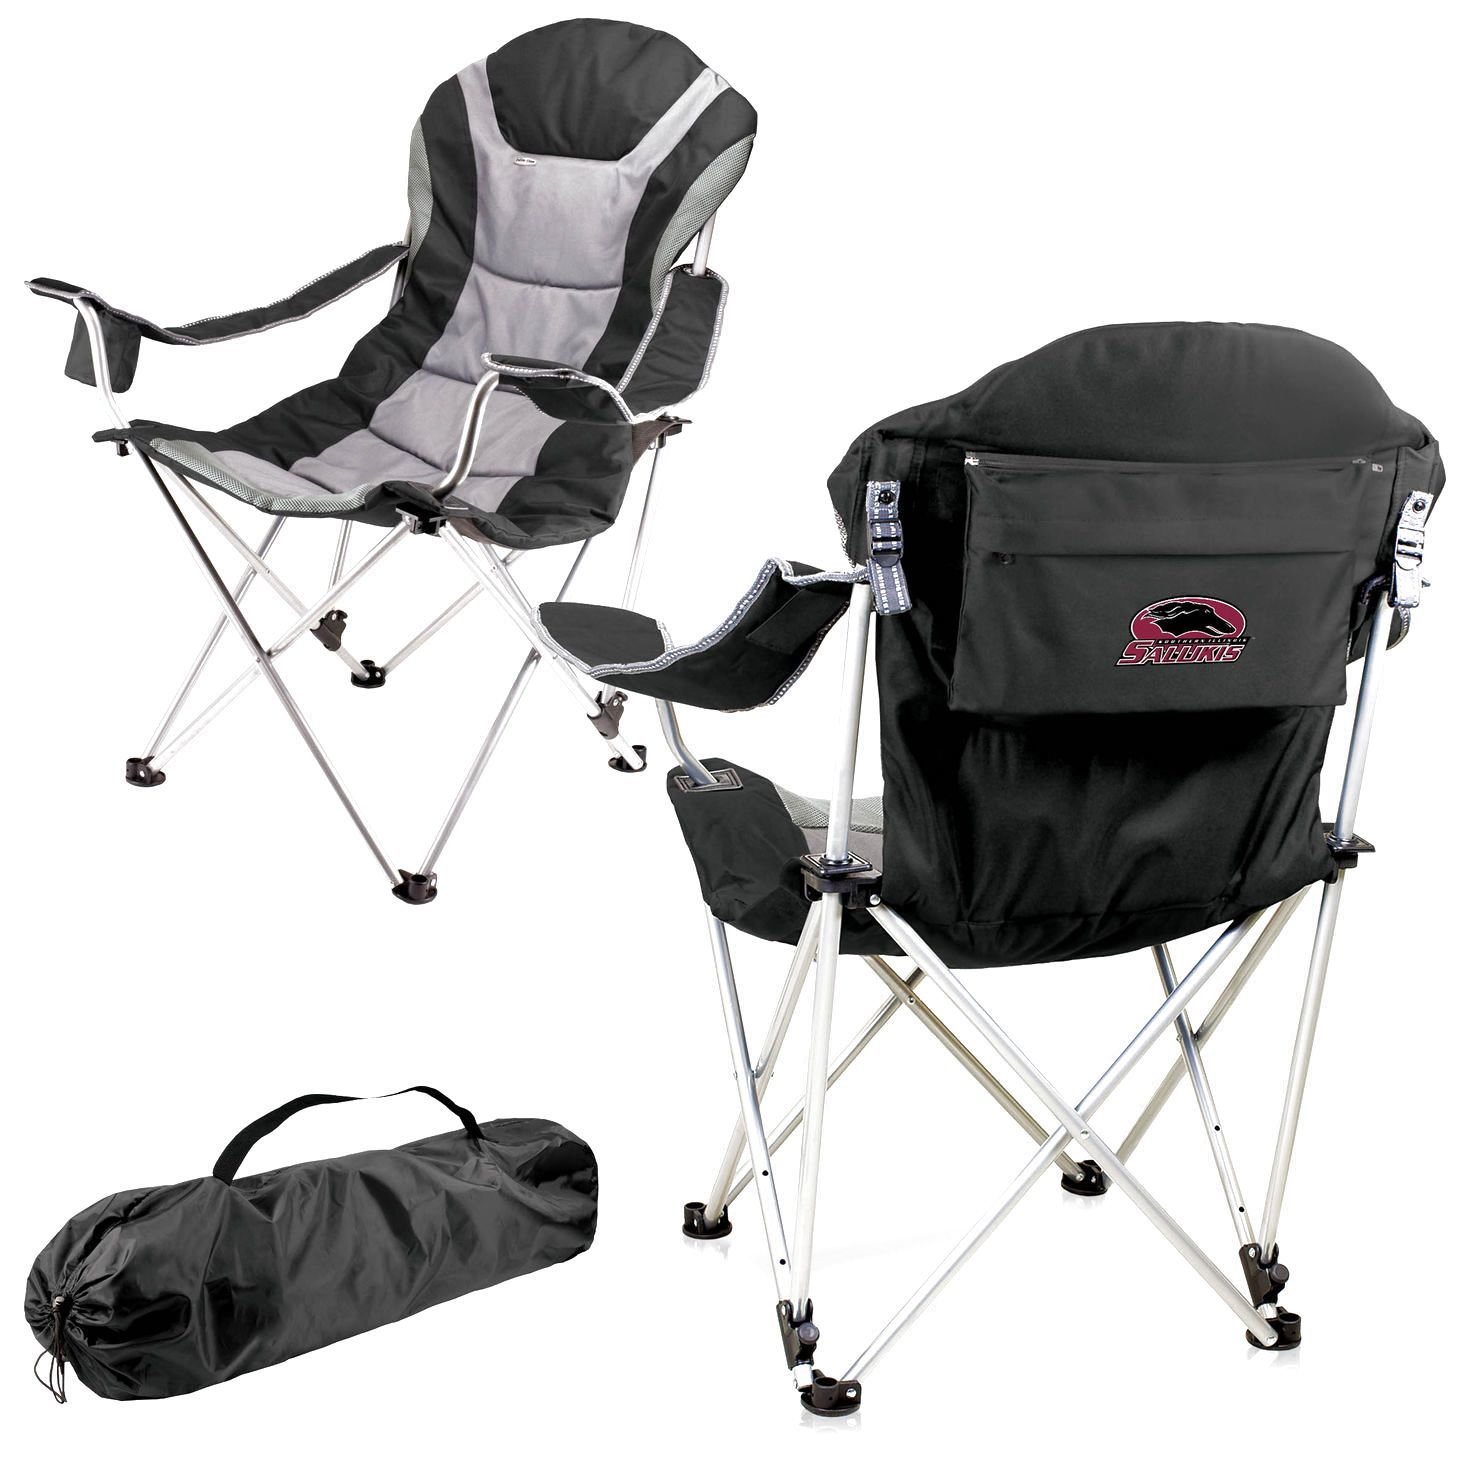 Southern Illinois Salukis Reclining Camp Chair - Black - $85.49